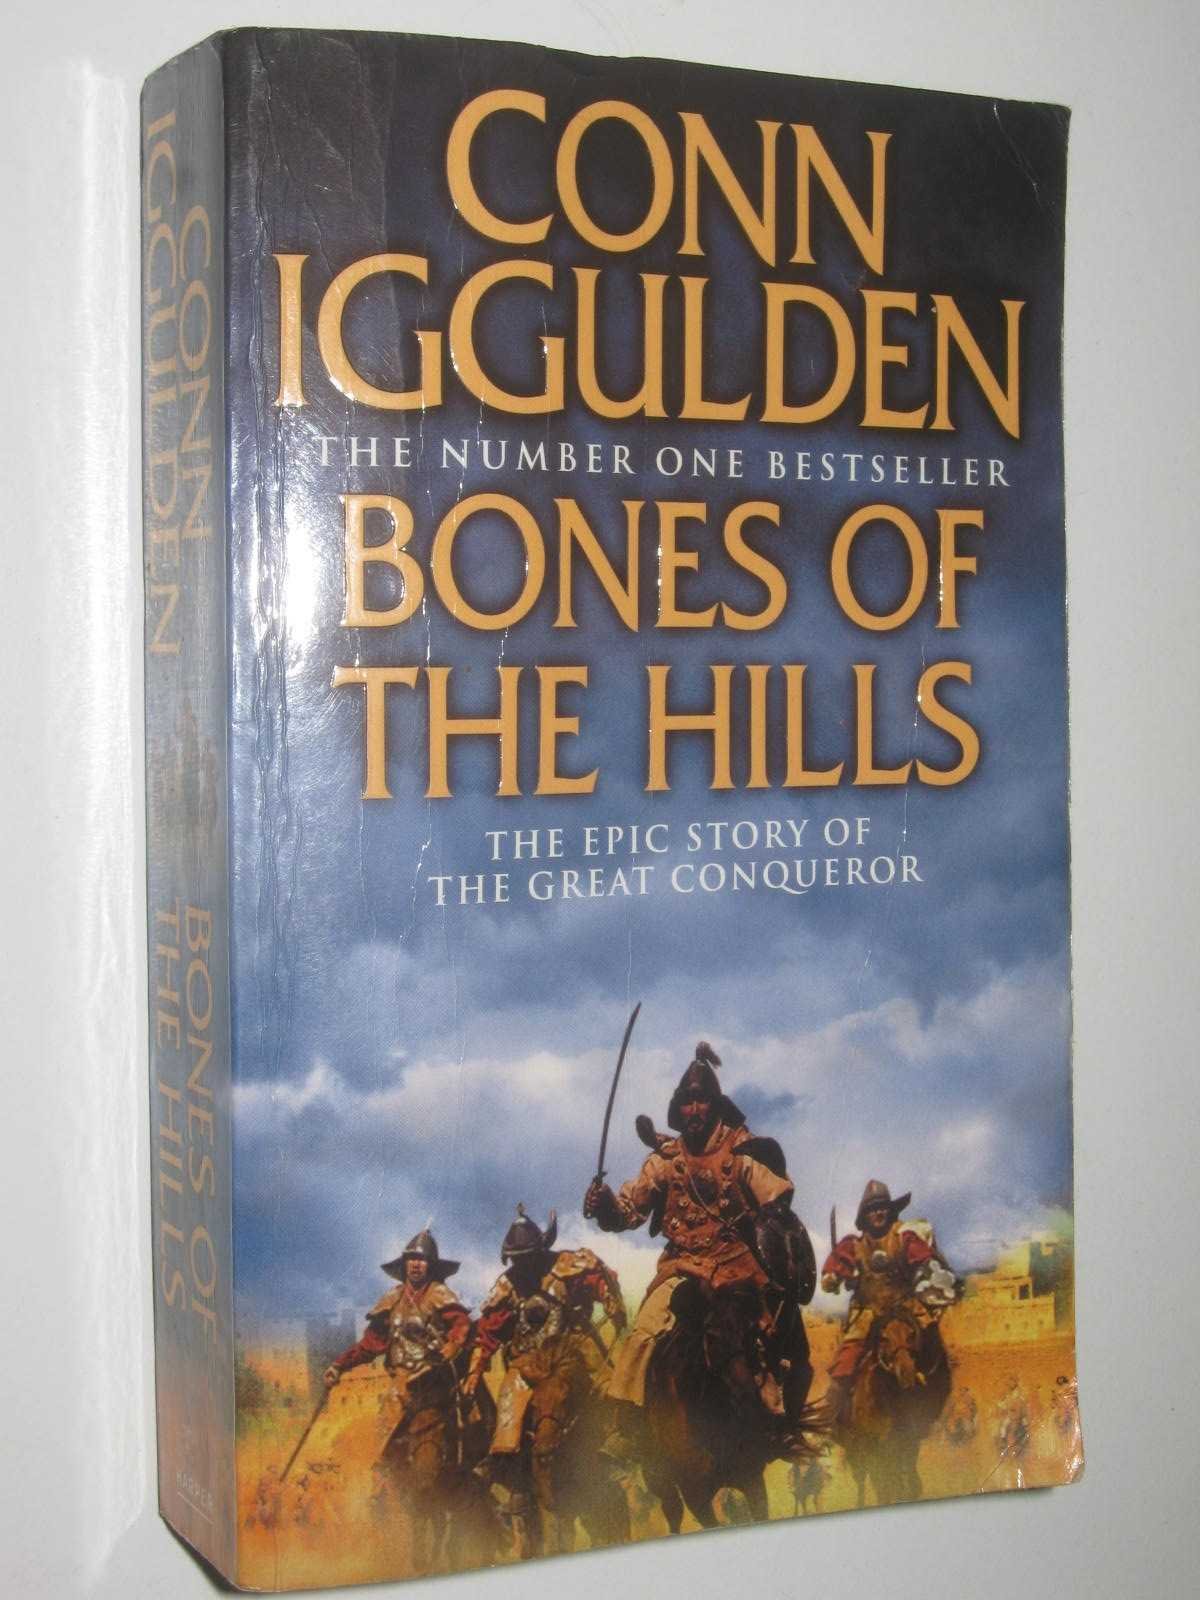 Image for Bones Of The Hills - The Conqueror Series #3